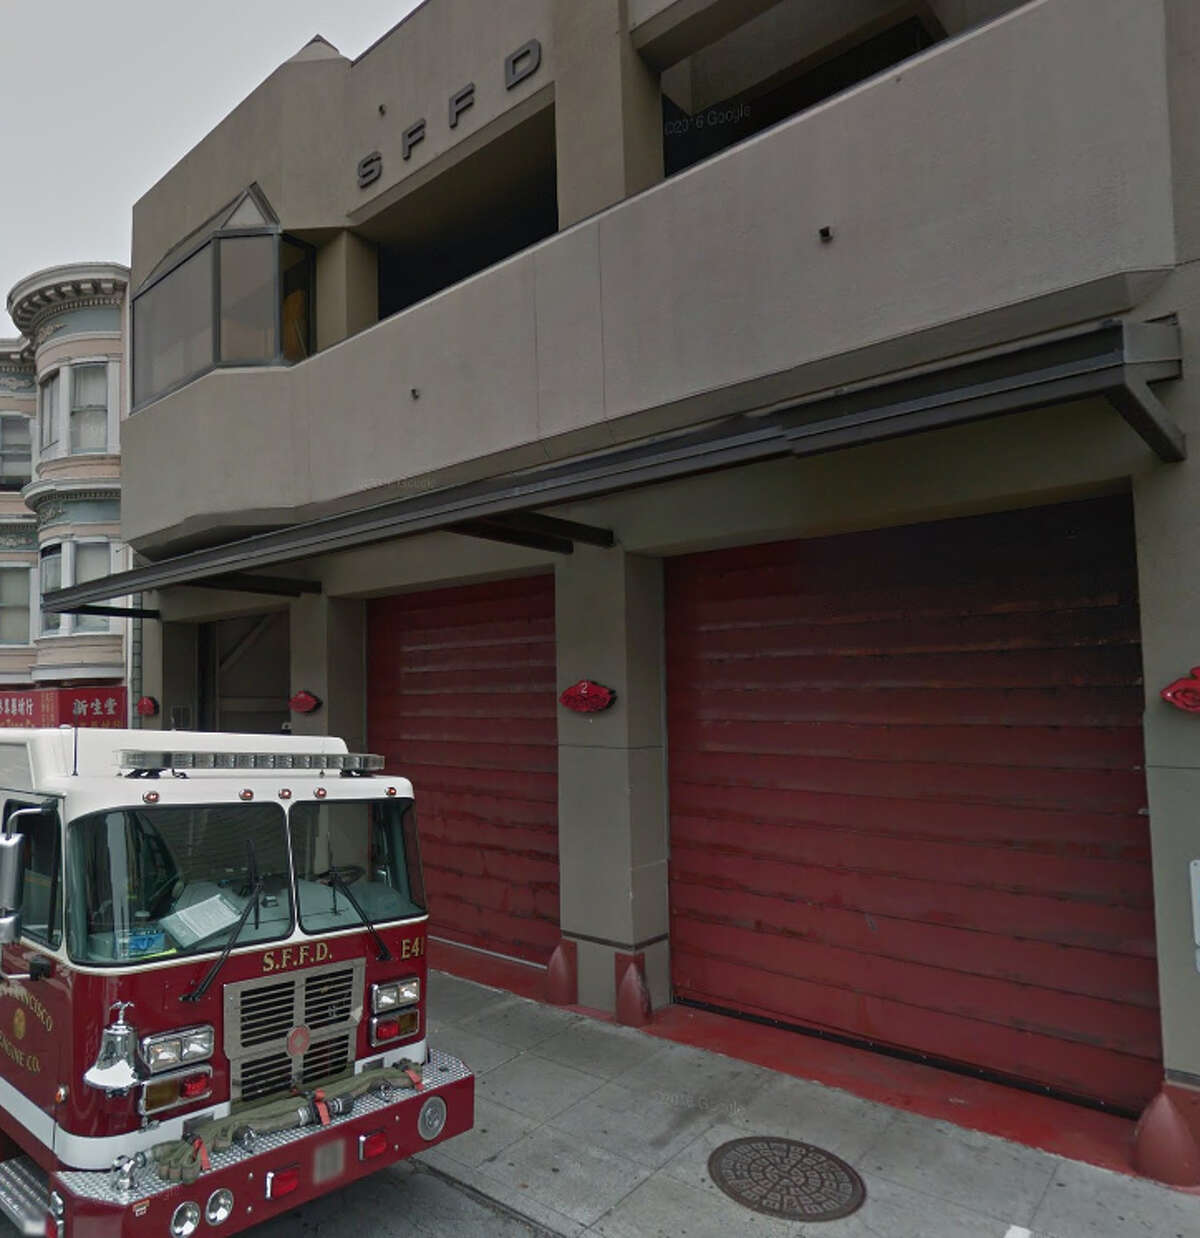 Outside Station 2 in Chinatown, where male firefighters allegedly harassed a female co-worker.